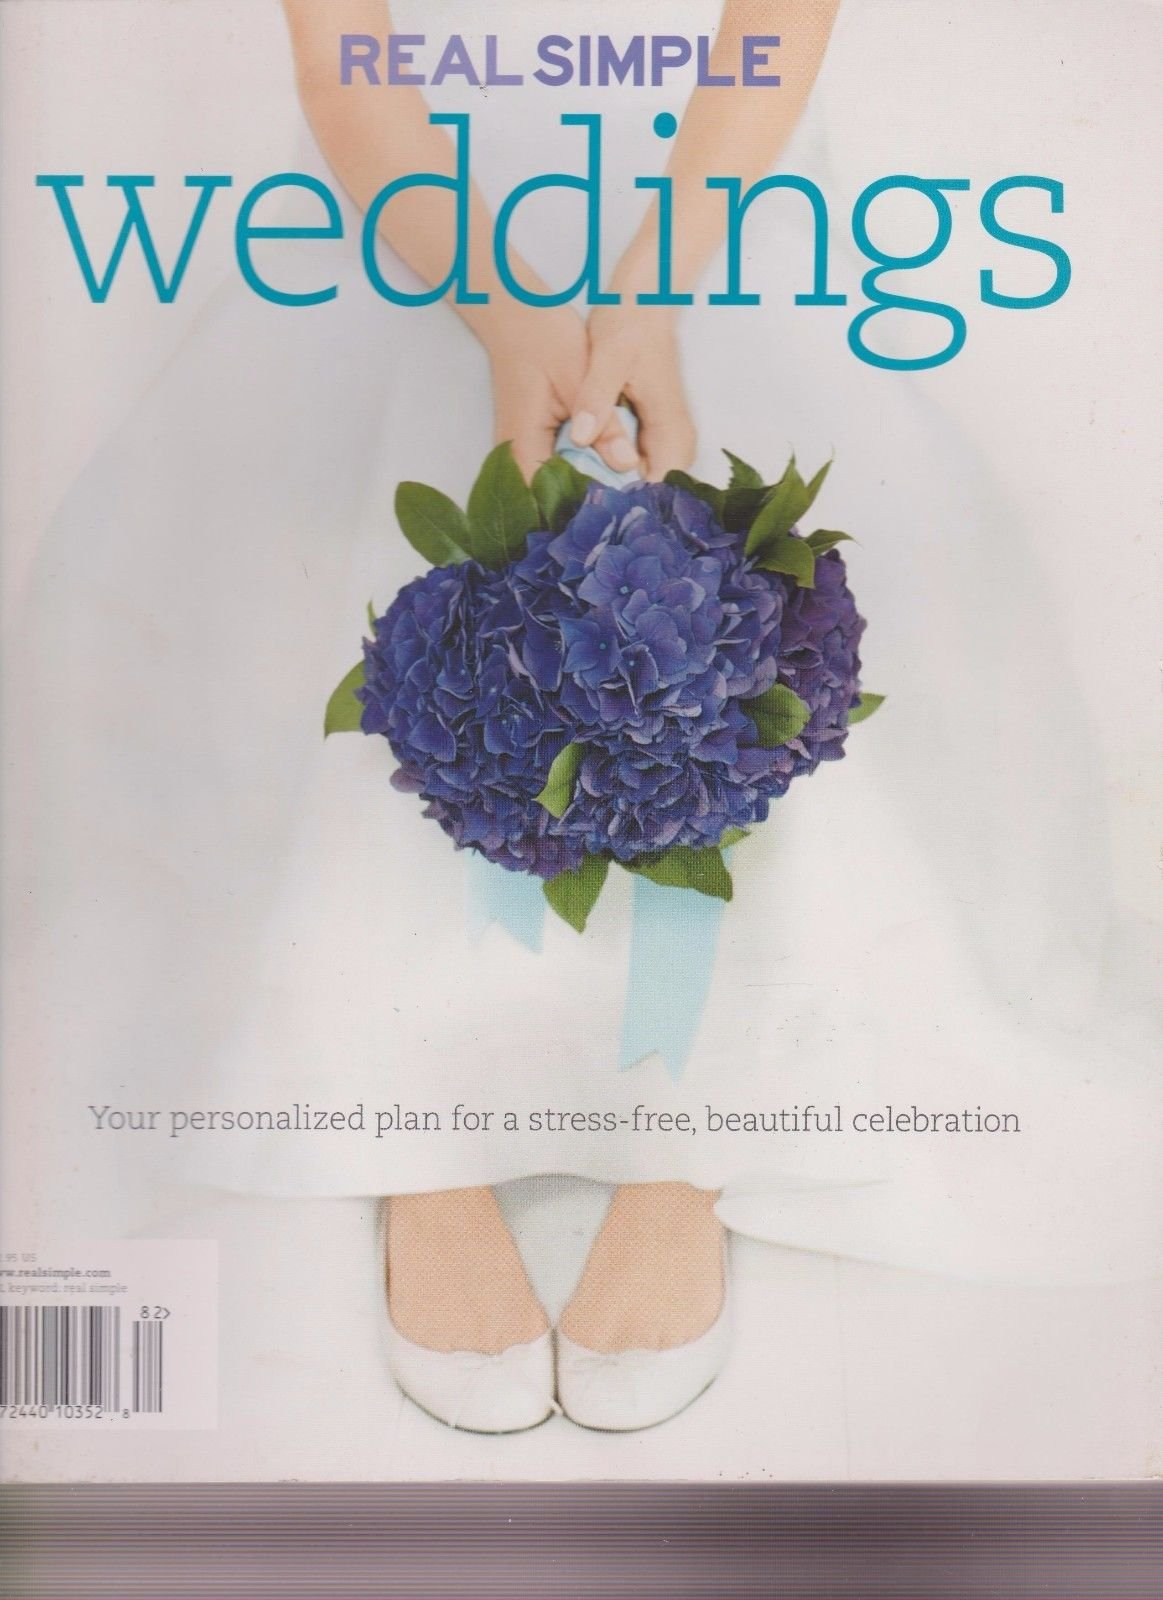 REAL SIMPLE WEDDINGS MAGAZINE 2008, YOUR GUIDE TO PLANNING WEDDING, NEW NO LABEL